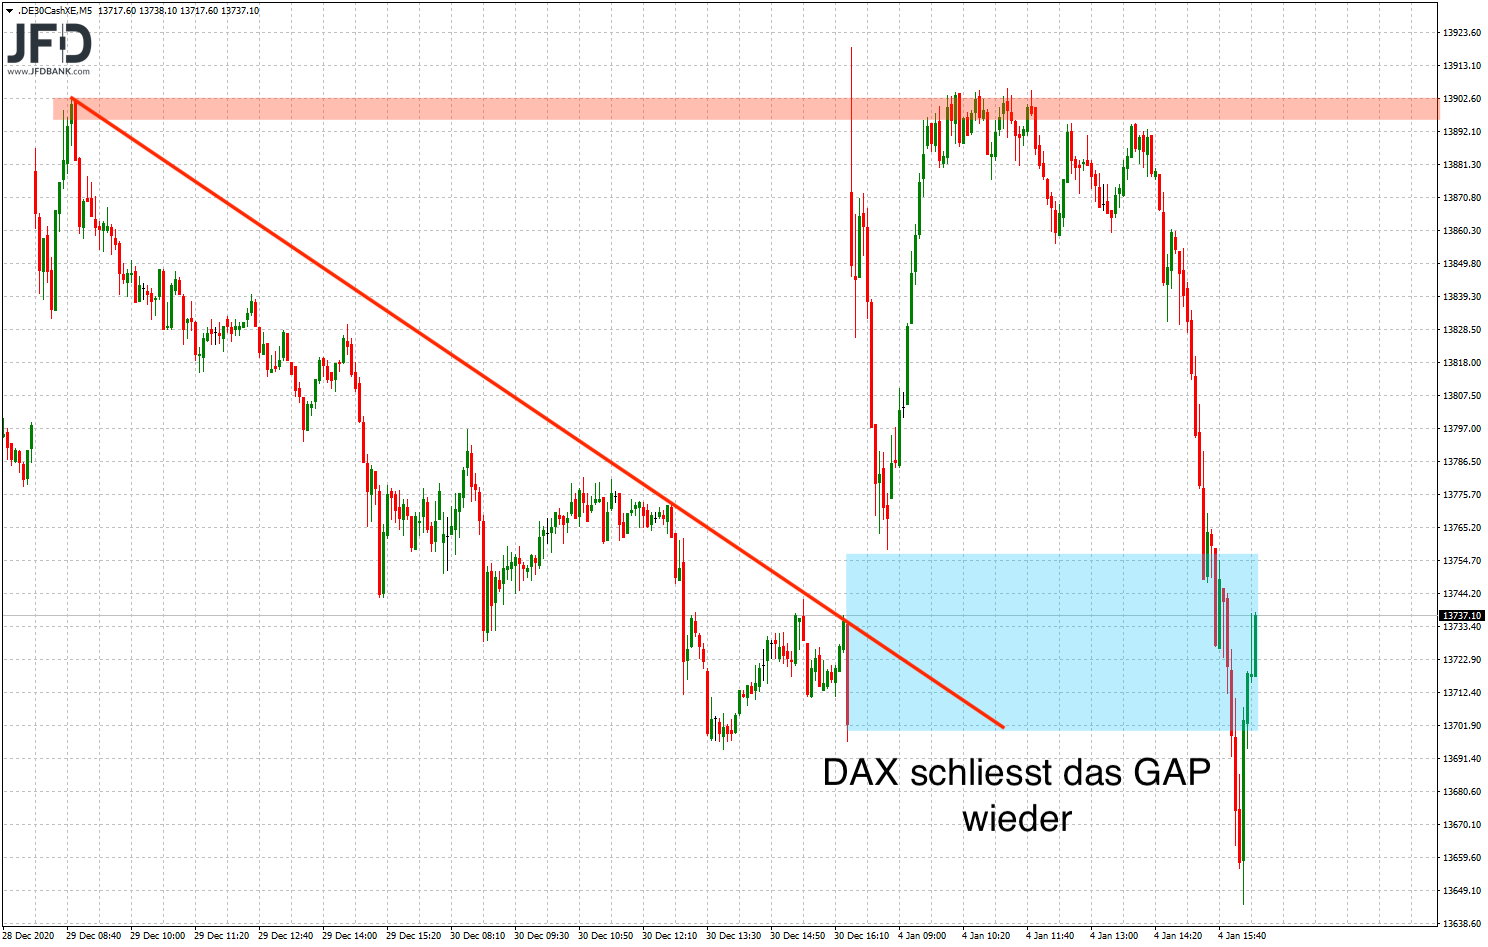 DAX-Handelstag in der Analyse